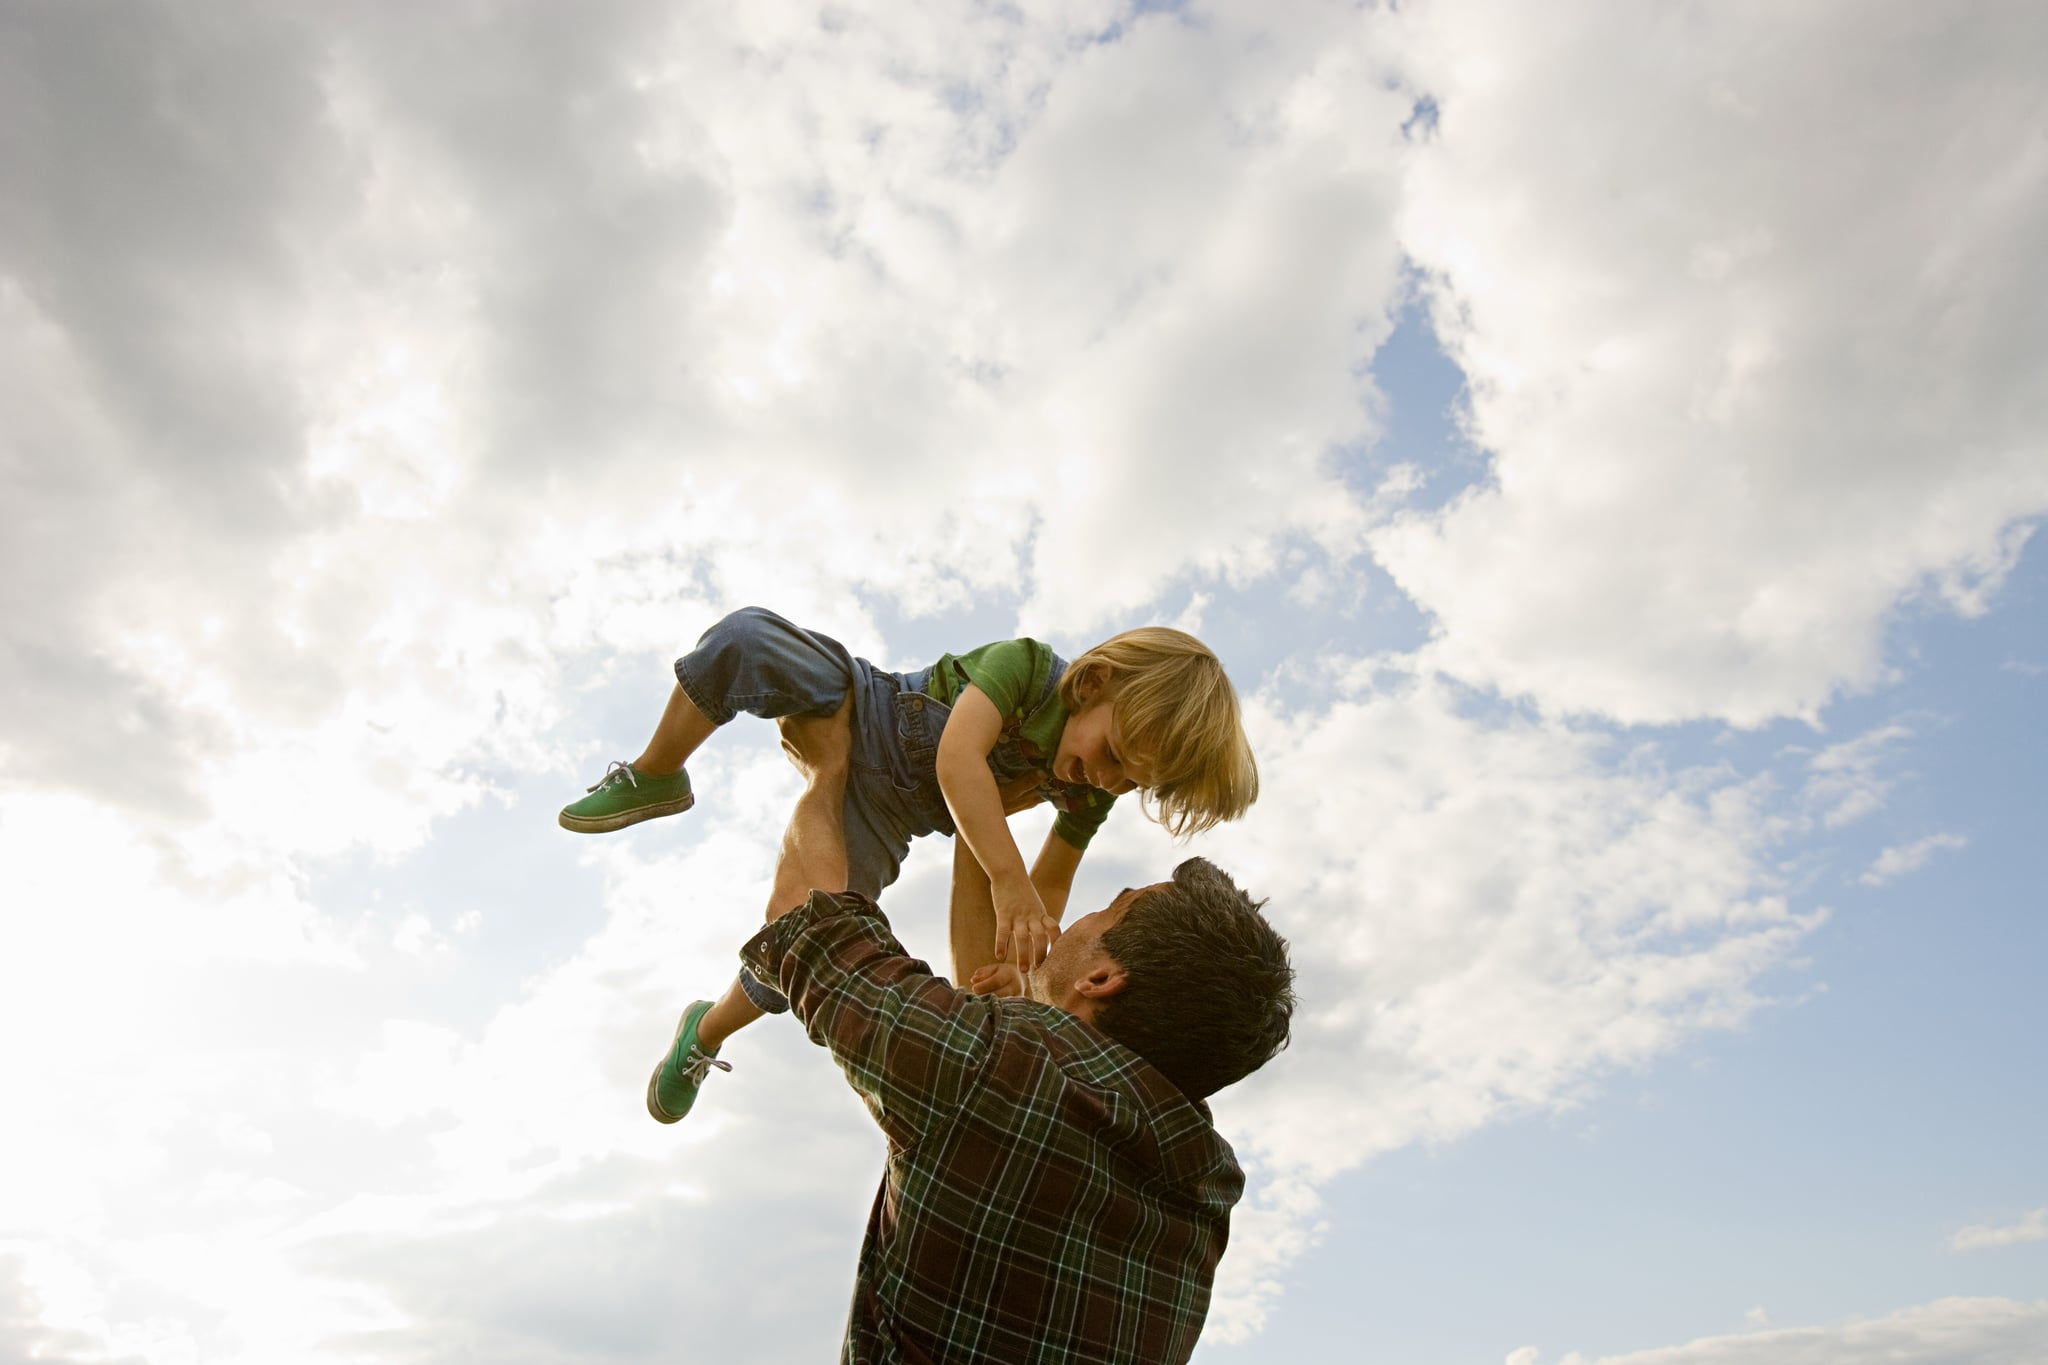 My Divorce Helped Me Become a More Present Father, Because I Had to Learn Balance